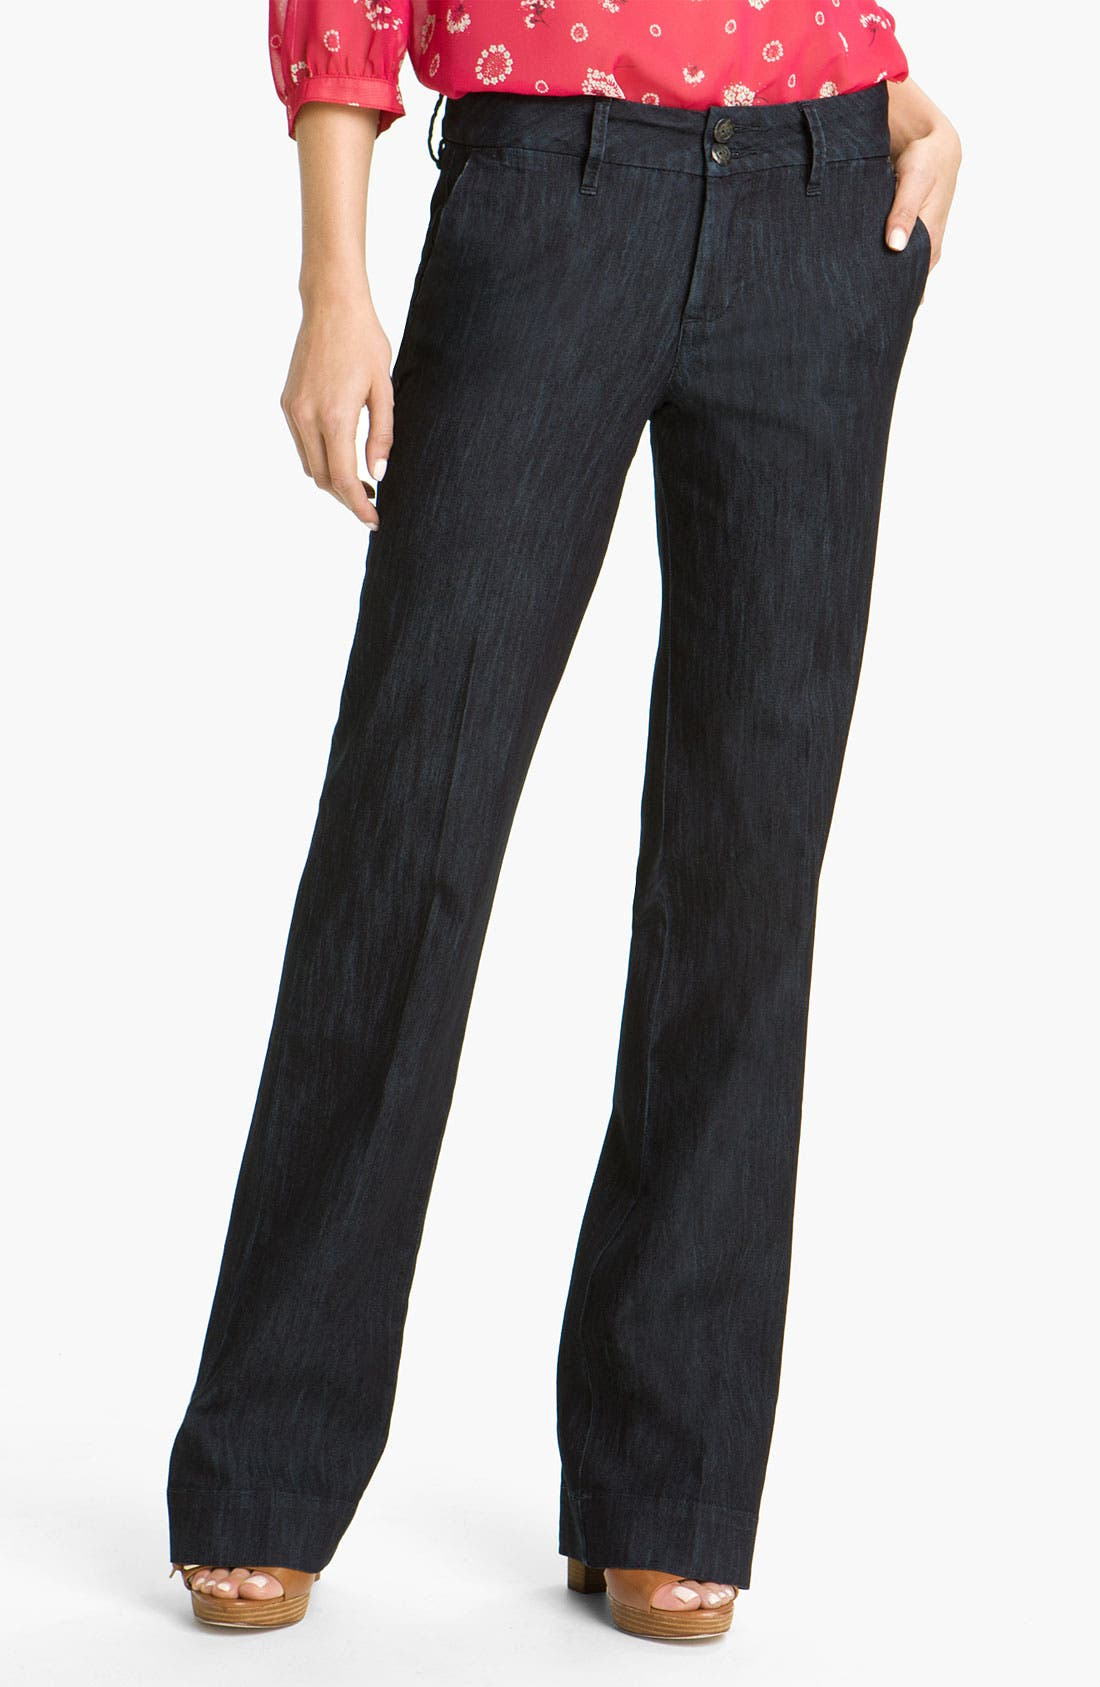 Main Image - Jag Jeans 'Pearl' Trouser Jeans (Dark Storm Wash)